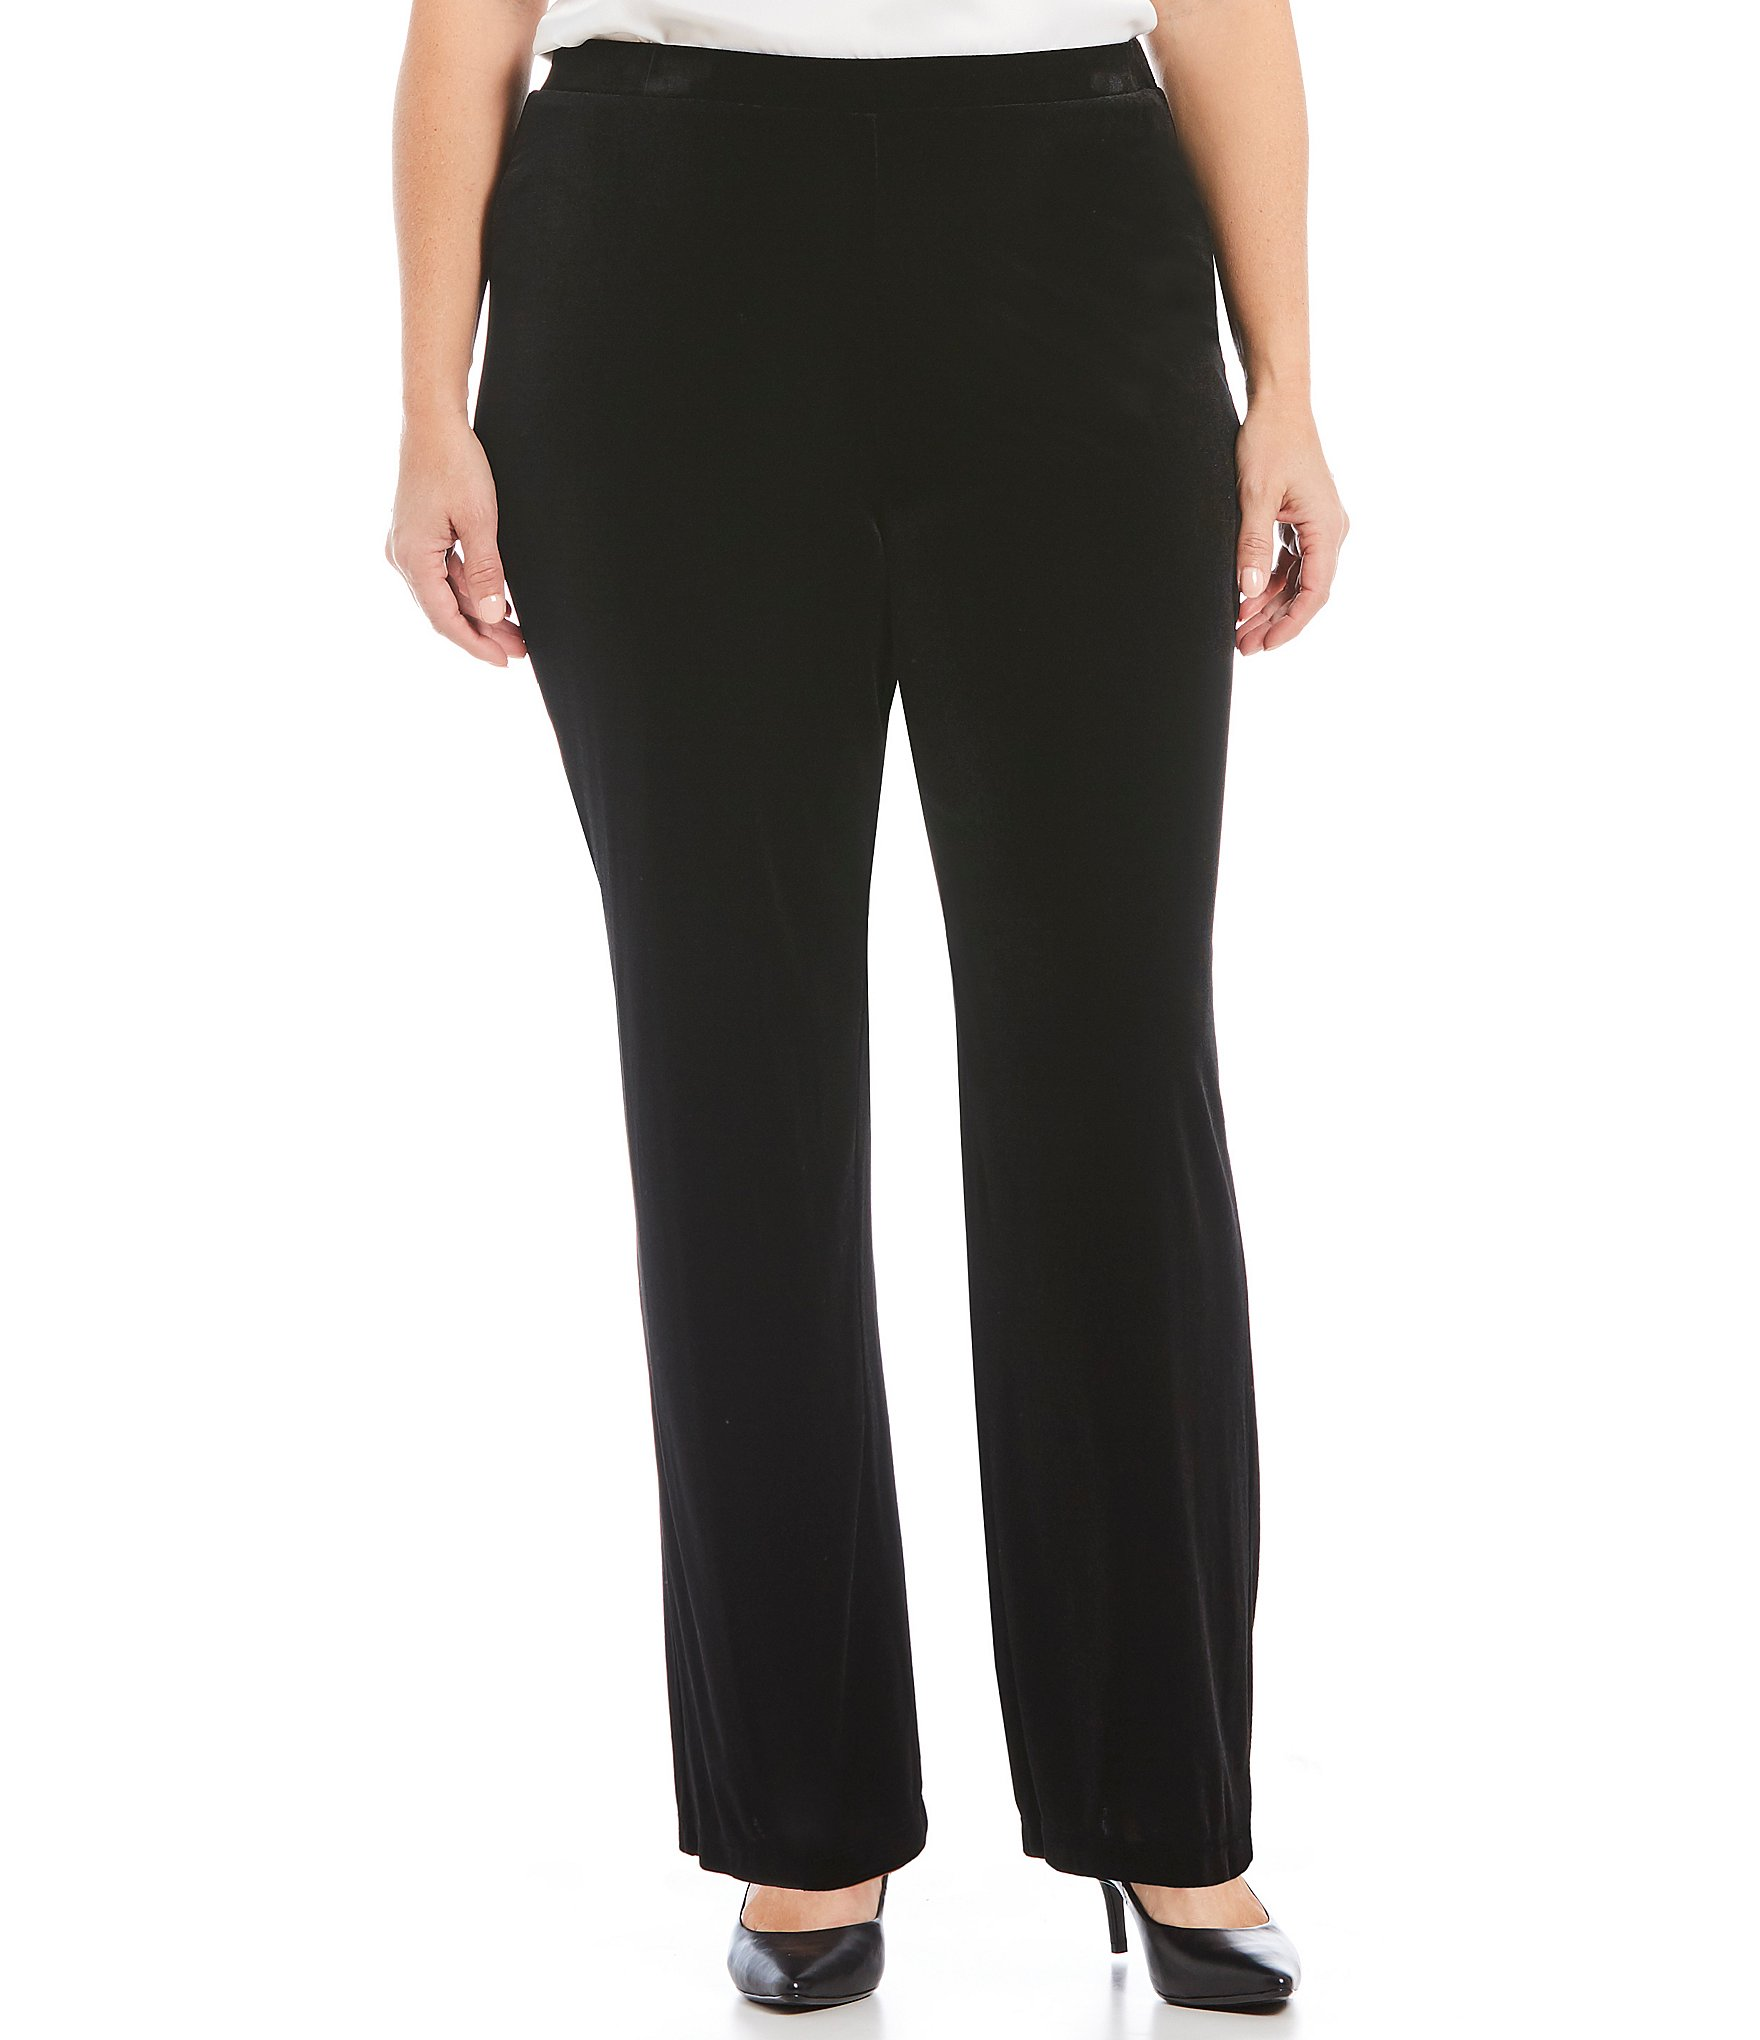 Wide Leg Pull-On Pants by Vince at newbez.ml - FREE Shipping. Read Vince Wide Leg Pull-On Pants product reviews, or select the size, width, and color of your choice.